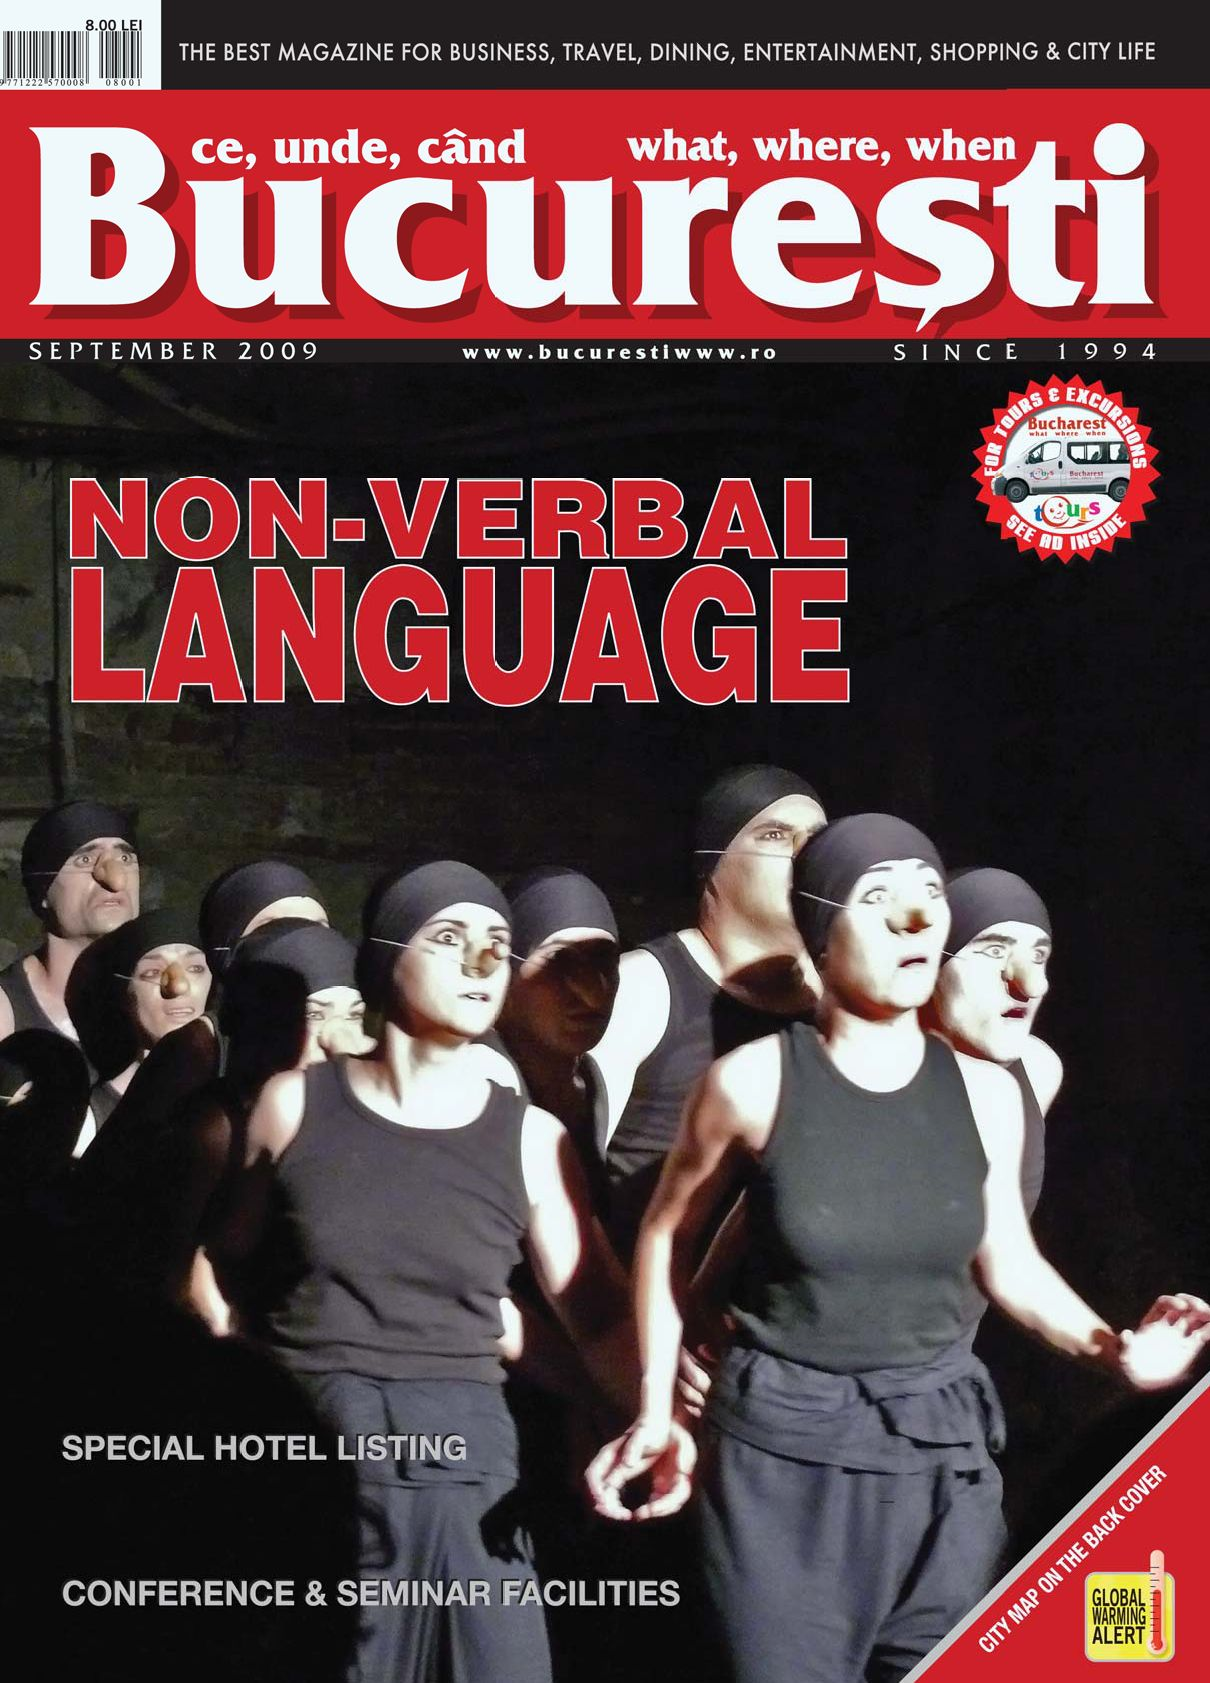 BUCURESTI WHAT, WHERE, WHEN - SEPTEMBER 2009 by CRYSTAL